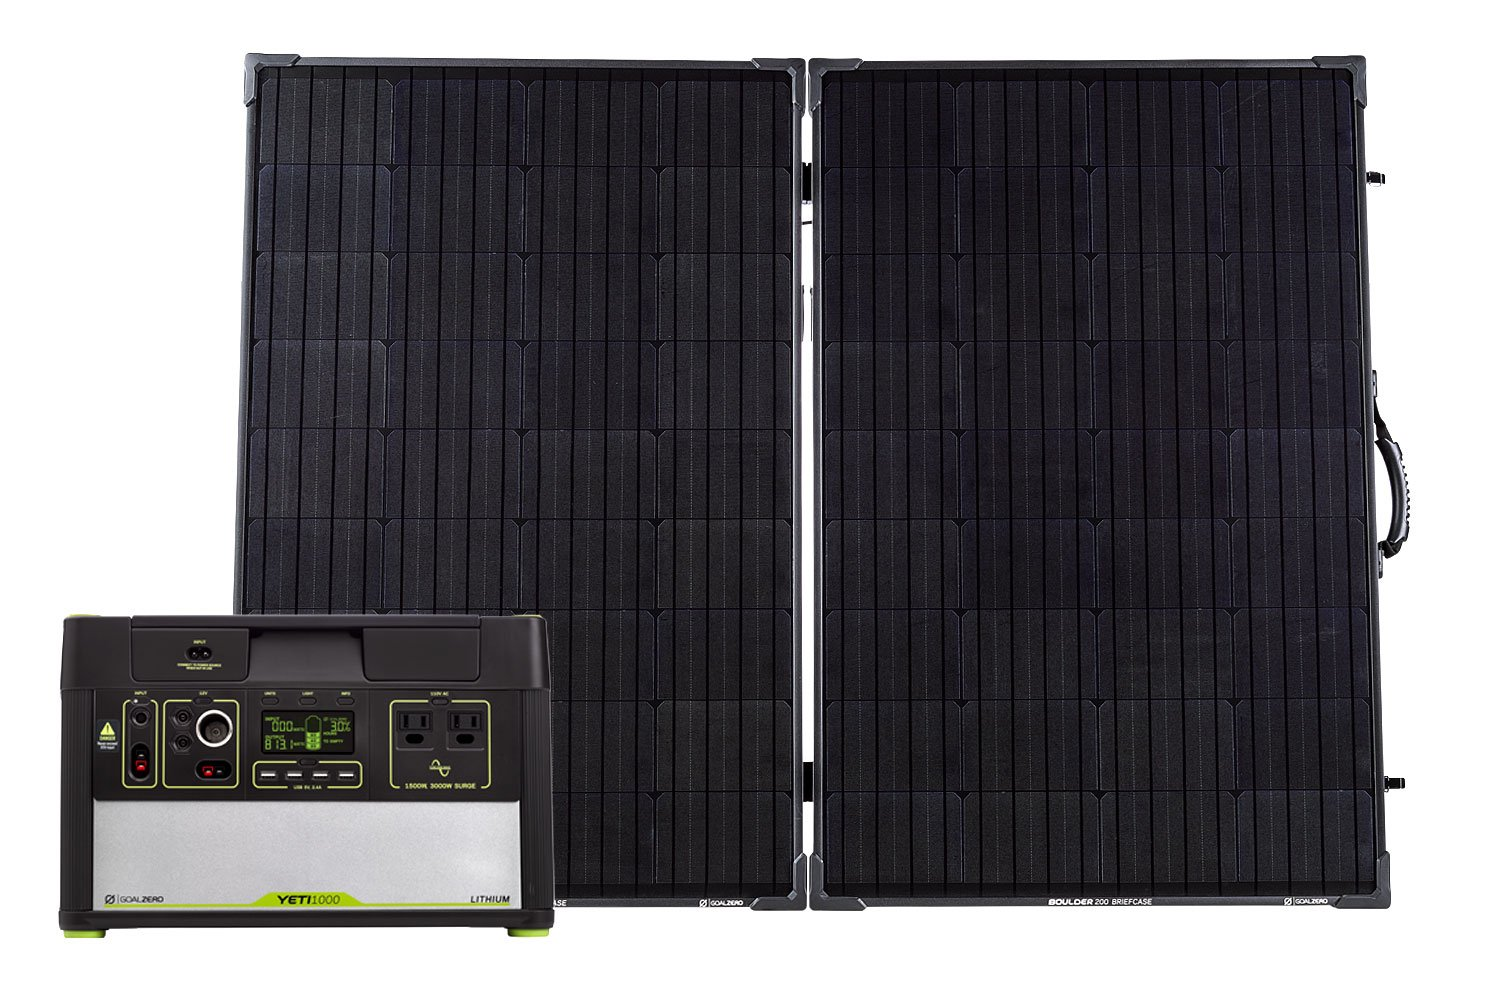 Goal Zero Yeti 1000 Lithium Solar Generator Kit With Boulder 200 Watt Briefcase Solar Panel